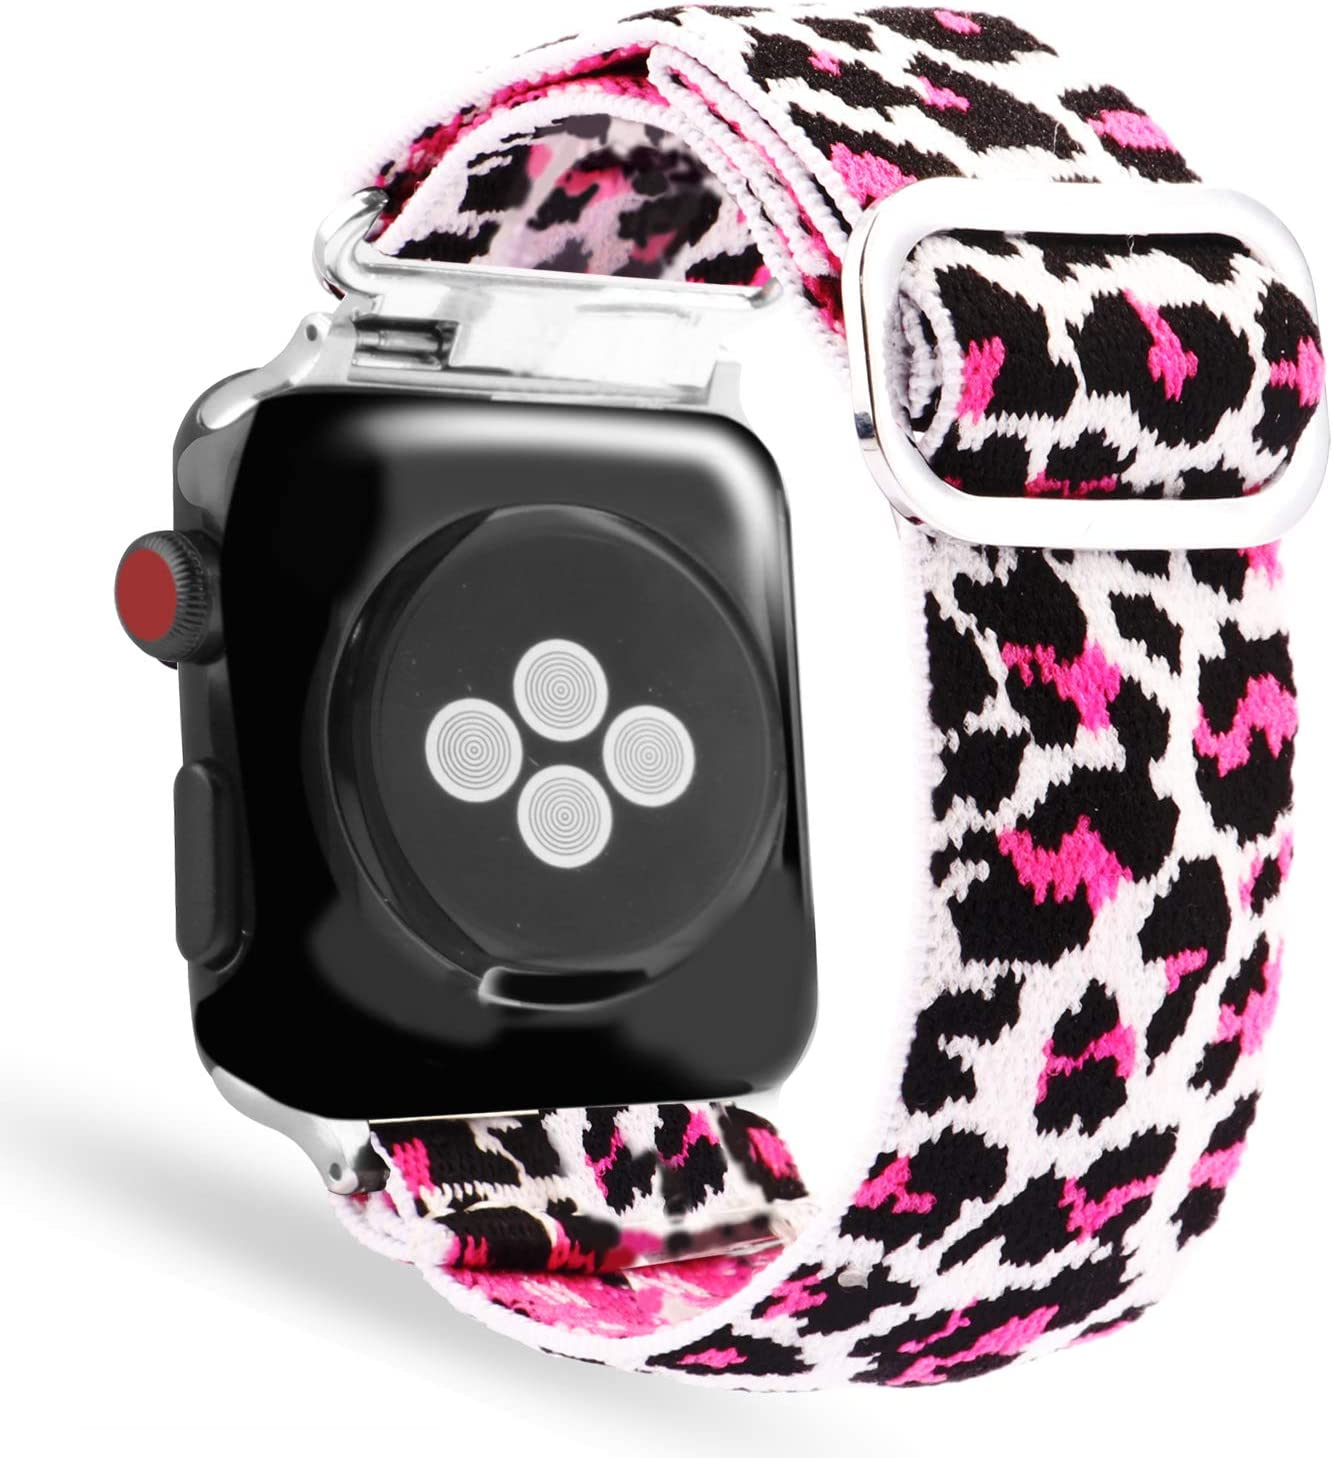 Sport Loop Band Compatible with Apple Watch Band 38mm 40mm 42mm 44mm iWatch Series 6 5 SE 4 3 2 1 Strap,Nylon Velcro Weave Women Men Replacement Wristband Stretchy Elastic Breathable Soft Light